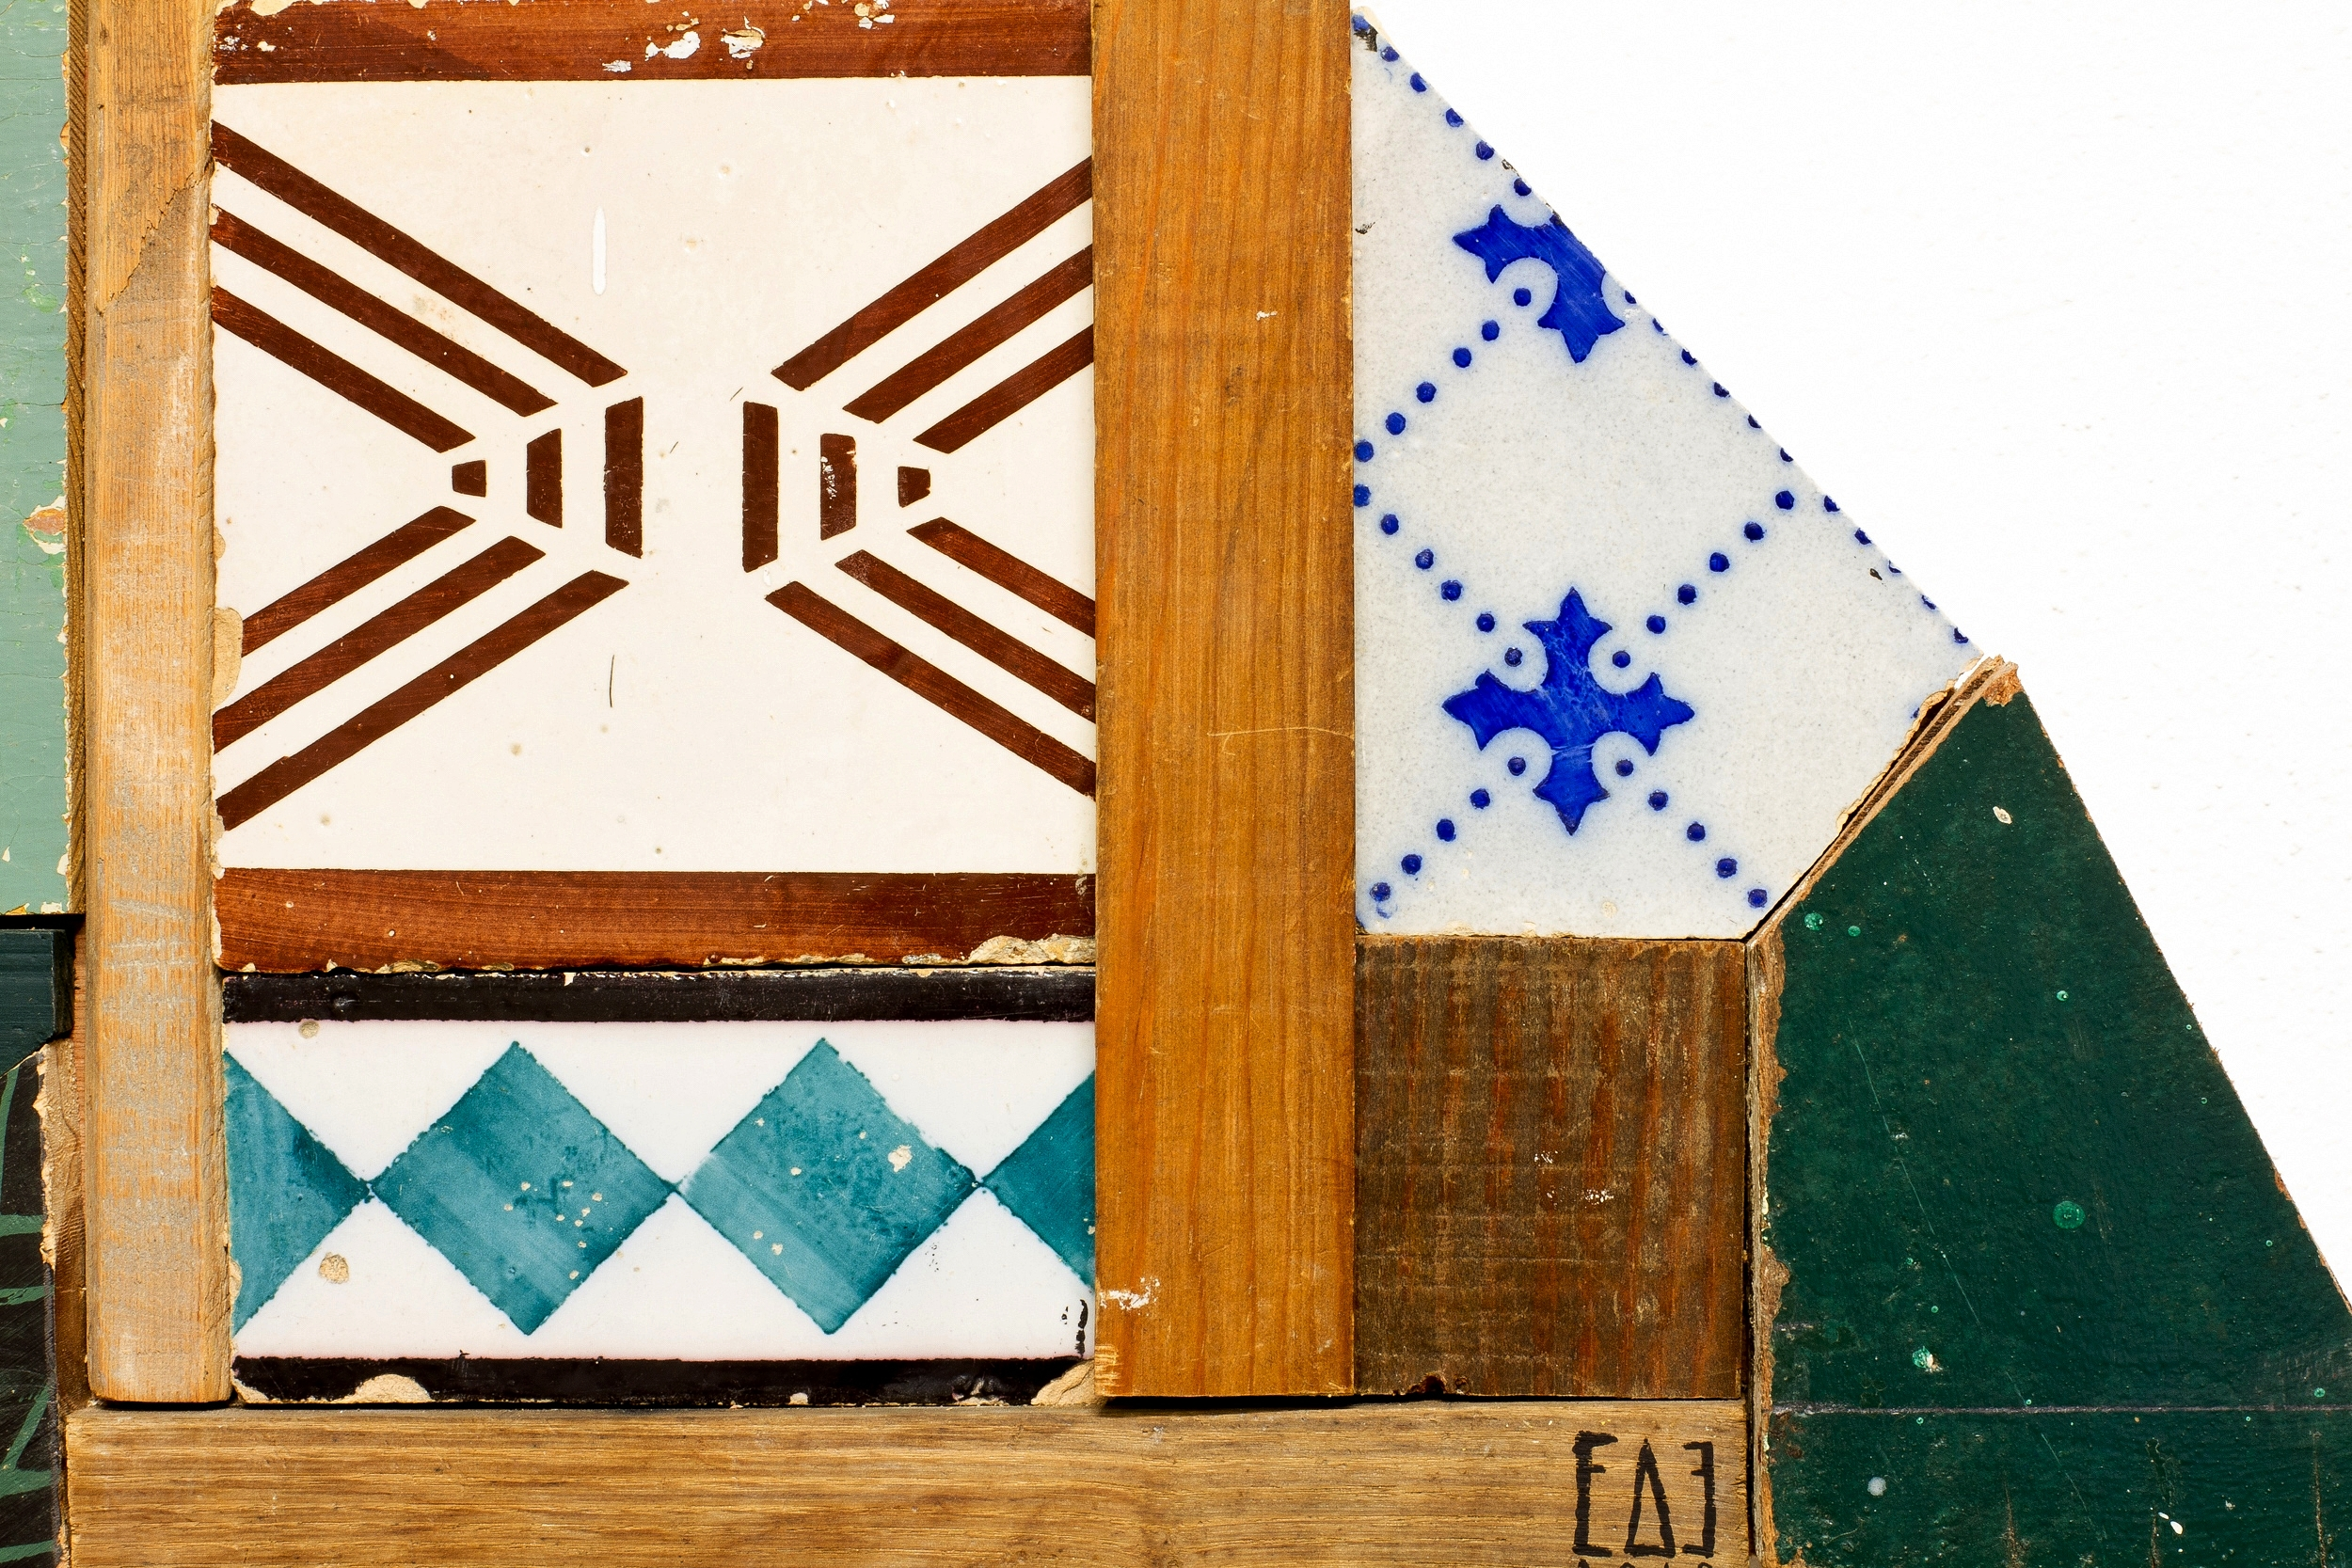 antique tiles and reclaimed wood assemblage | image: Marcelo Duarte @graphosbrasil